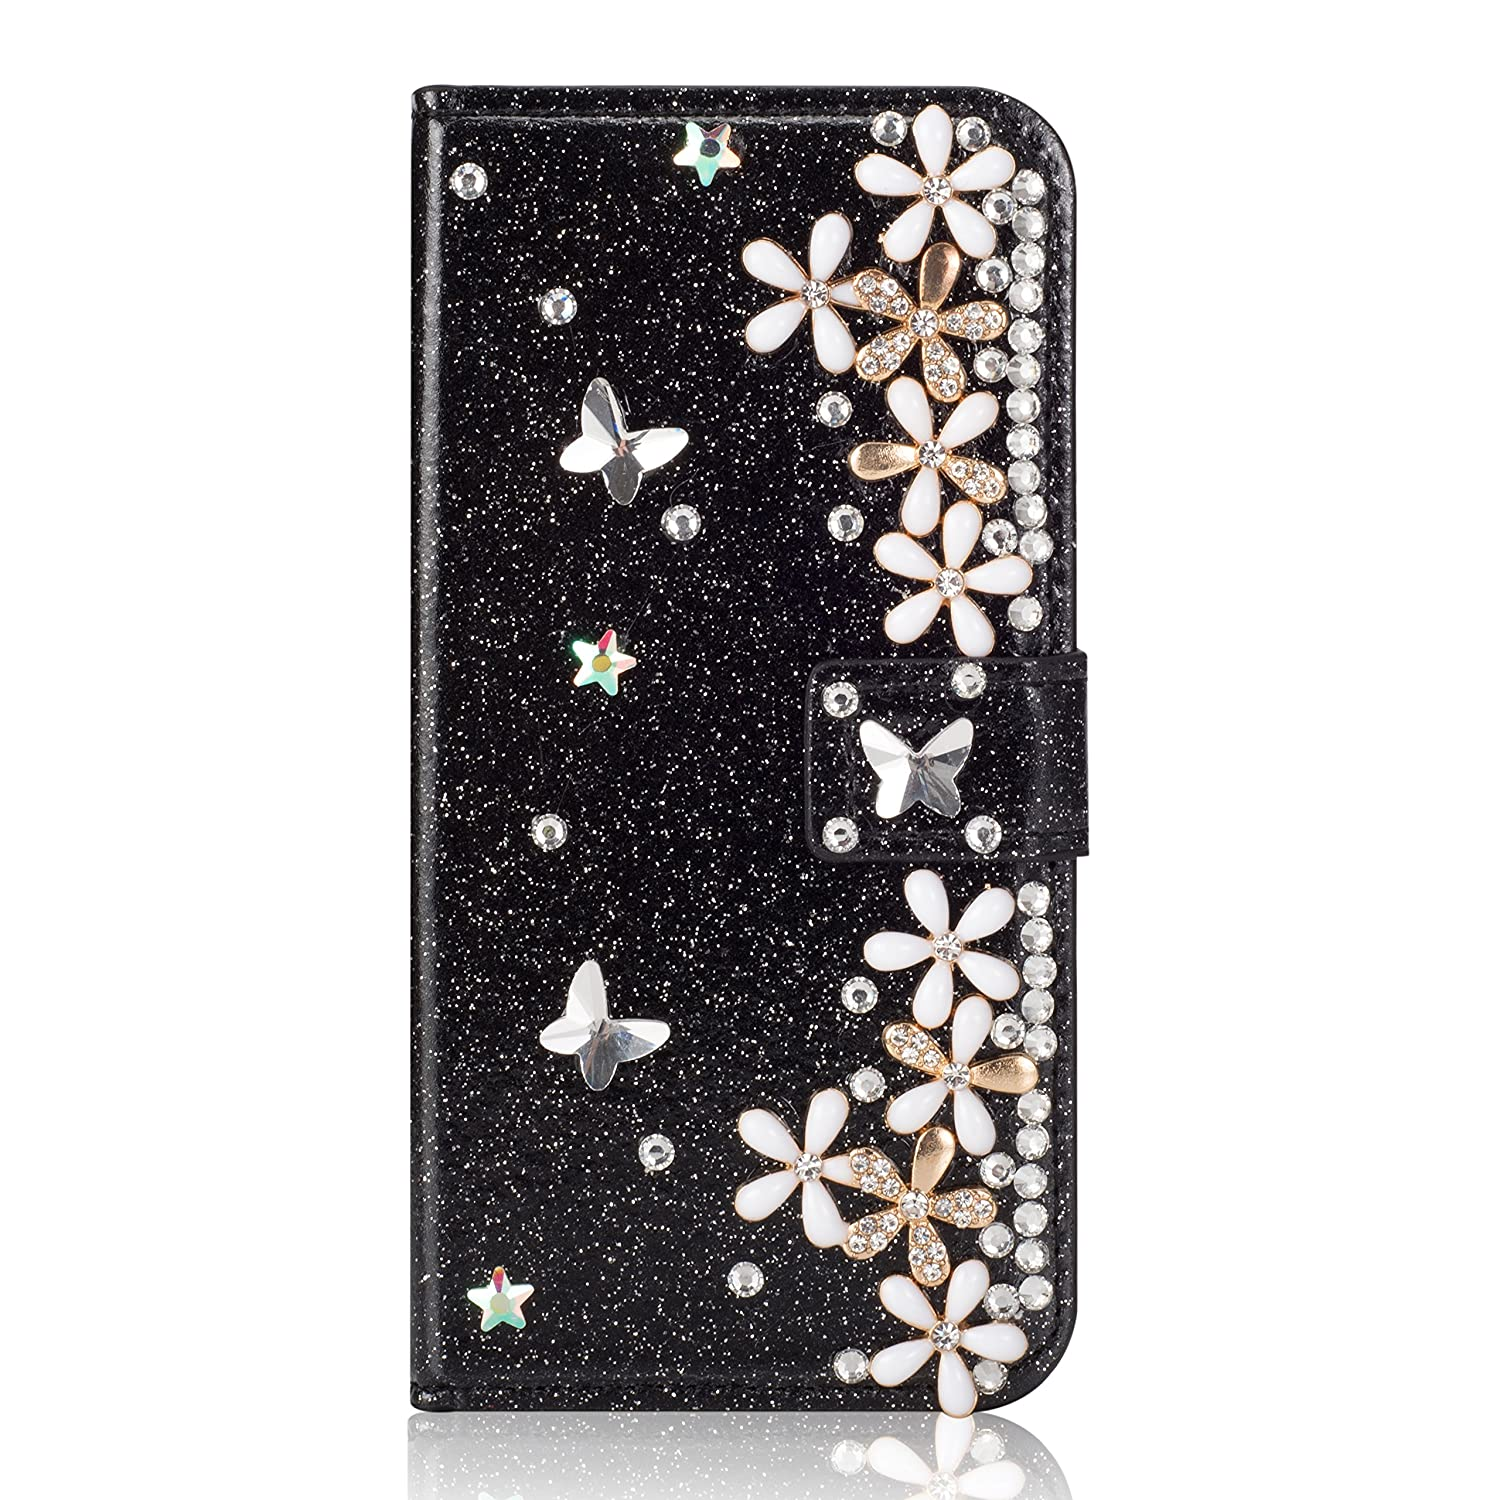 Case Galaxy S9 Plus, Misteem Luxury Clear Rhinestone Diamond Glitter Sparkle Flowers 3D Pattern Bookstyle Flip Leather Shell Wallet with Function Support Card Slots Magnetic Closure Protective Cover Samsung Galaxy S9 Plus [Floral Pink]